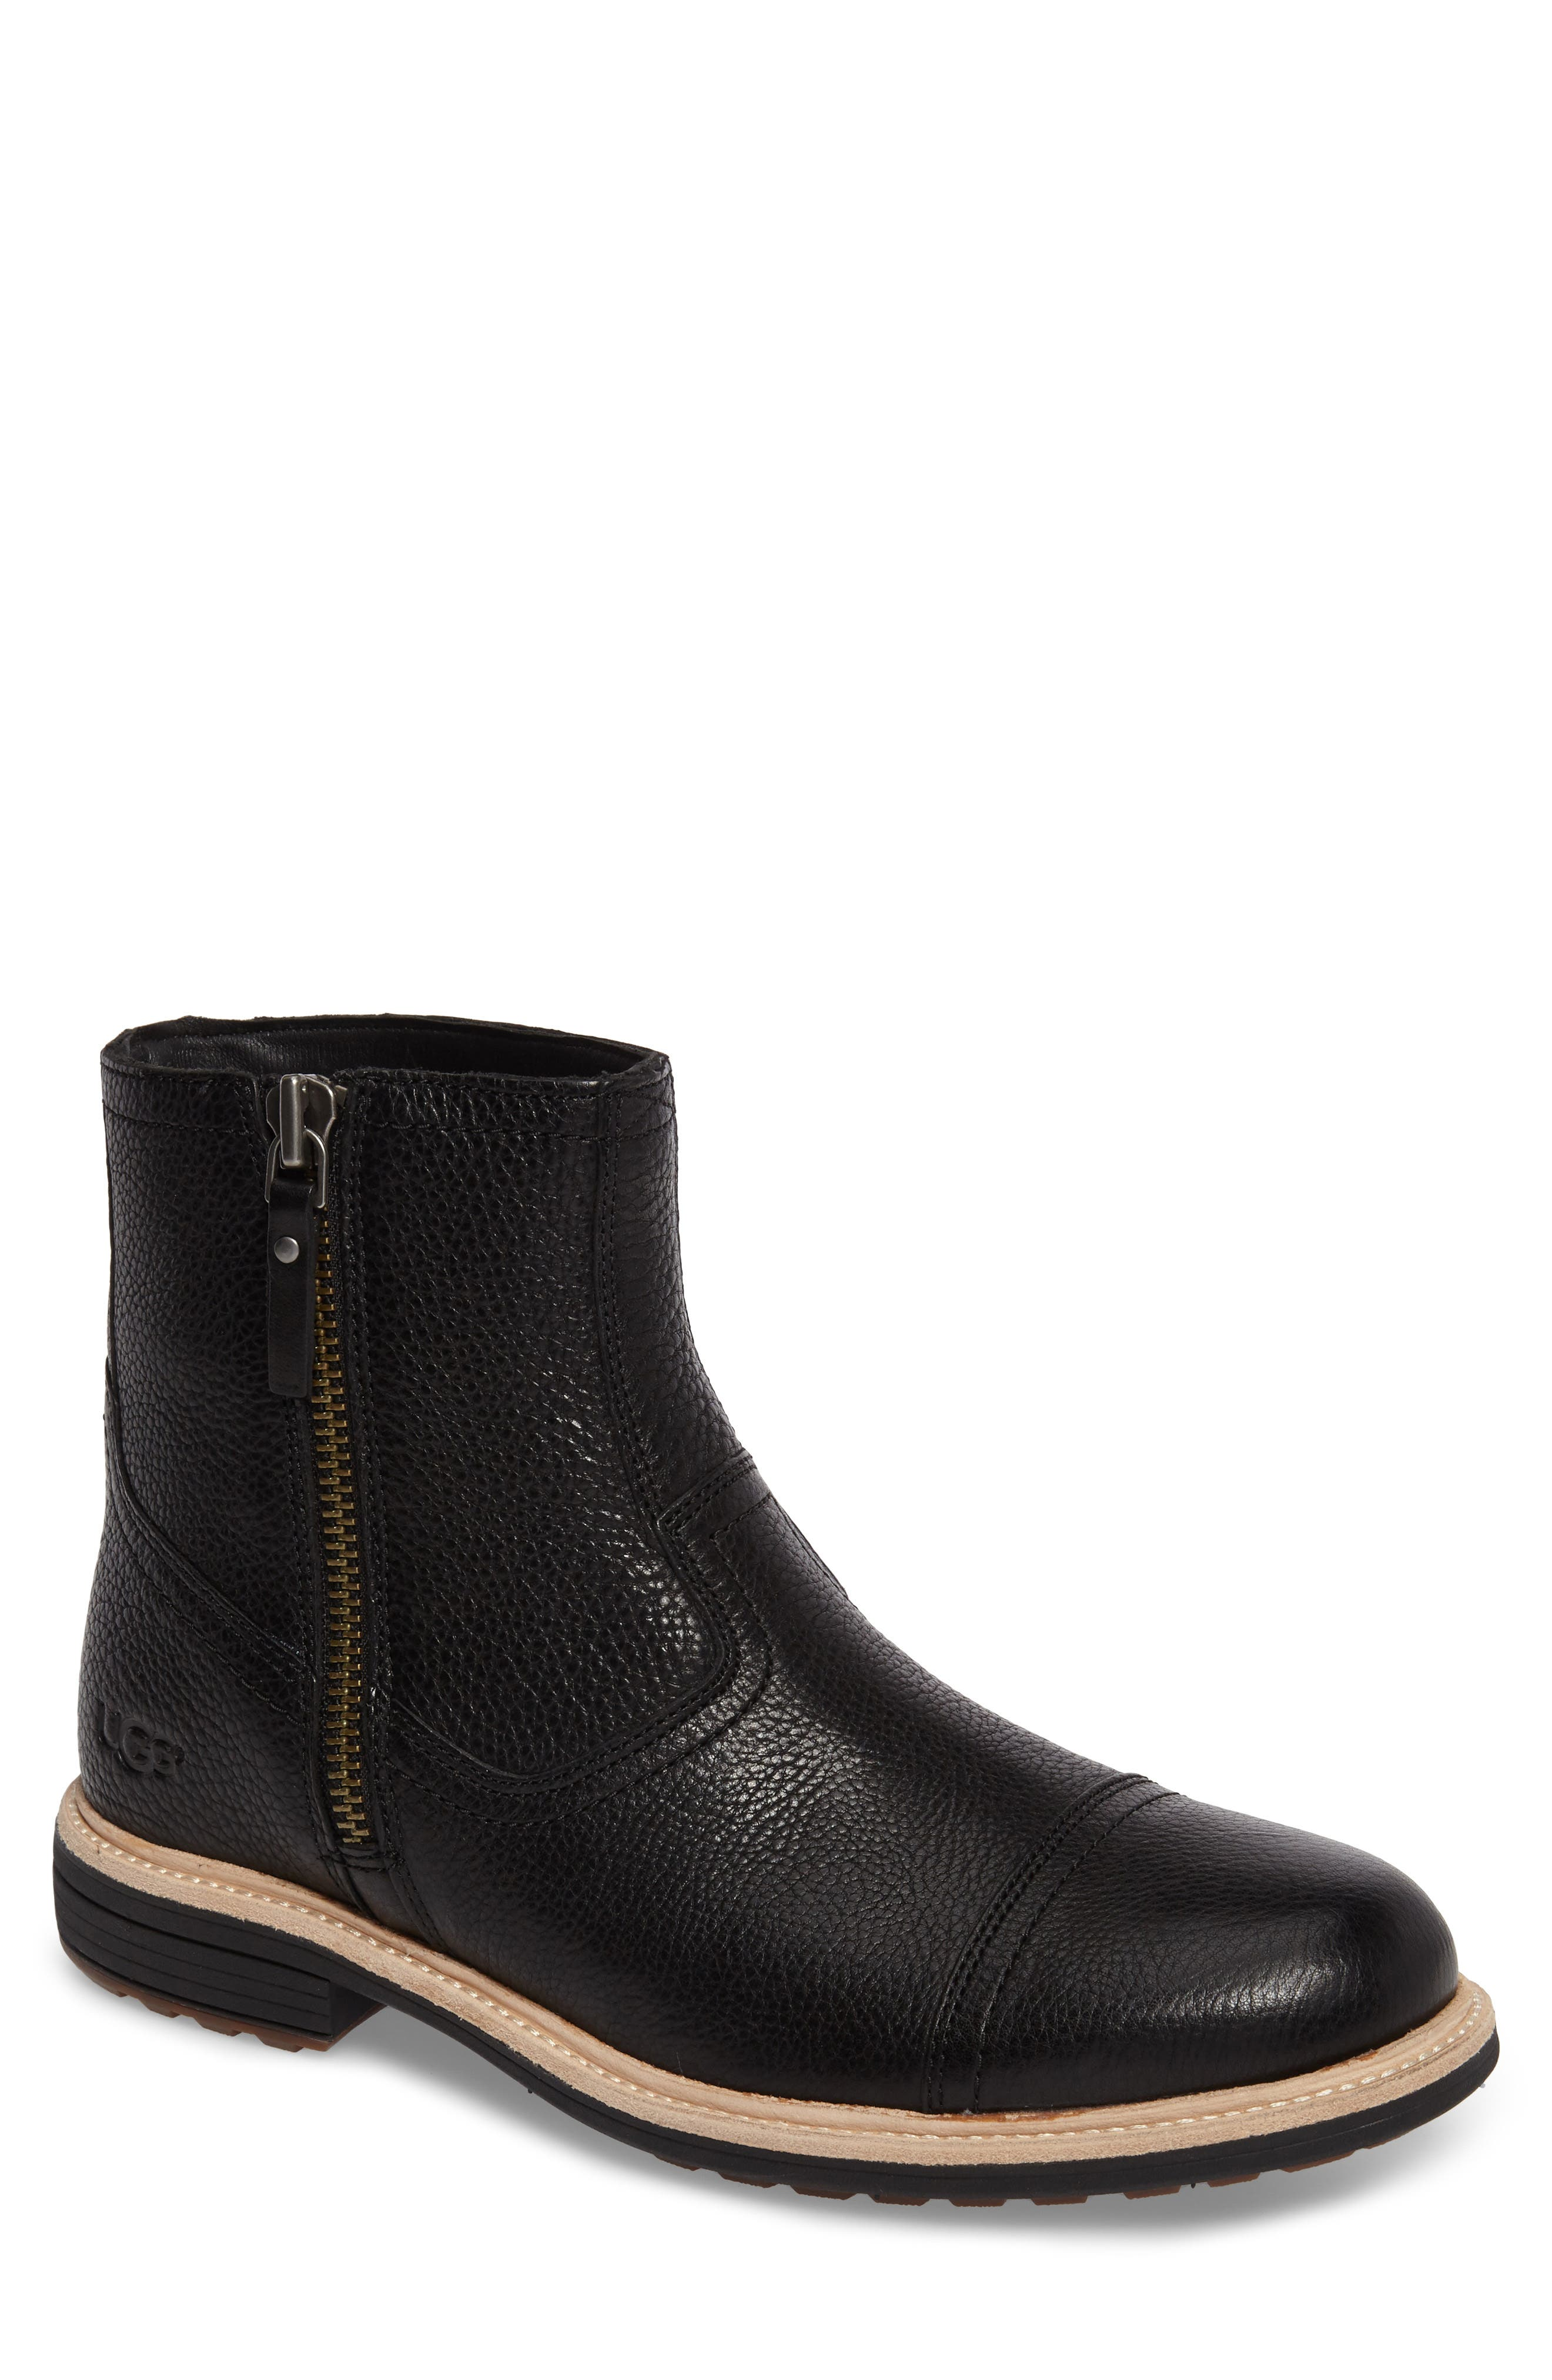 Dalvin Zip Boot with Genuine Shearling,                         Main,                         color, BLACK